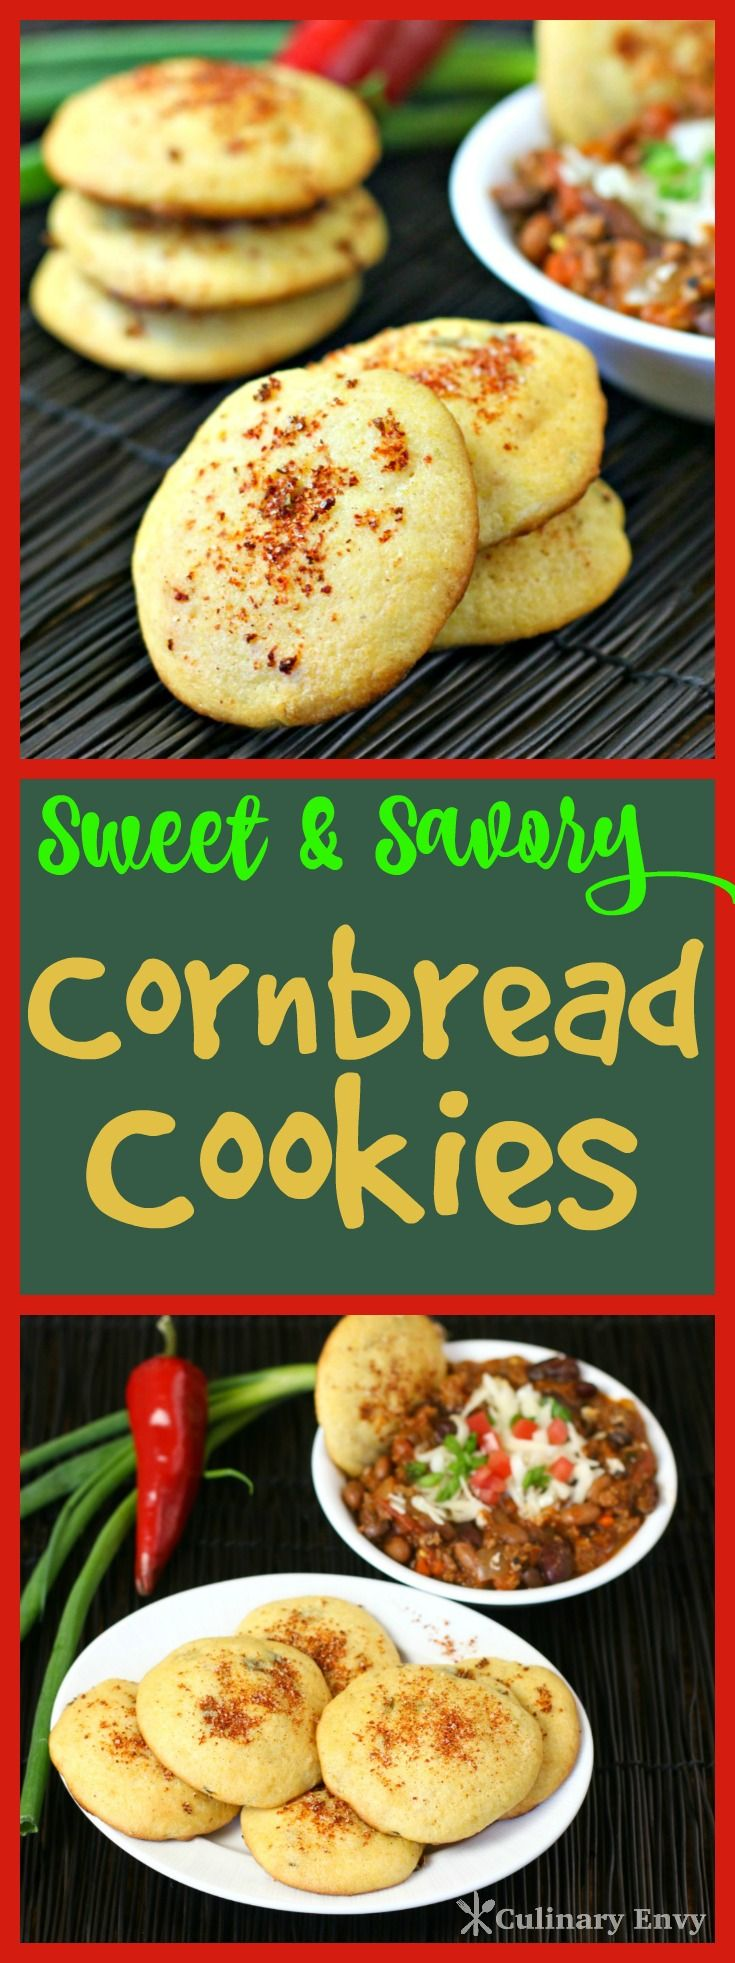 You just have to try these fun and flavorful Sweet and Savory Cornbread Cookies. They are buttery, sweet and slightly spicy. Kids LOVE them! Click to read more or Pin & Save for later.